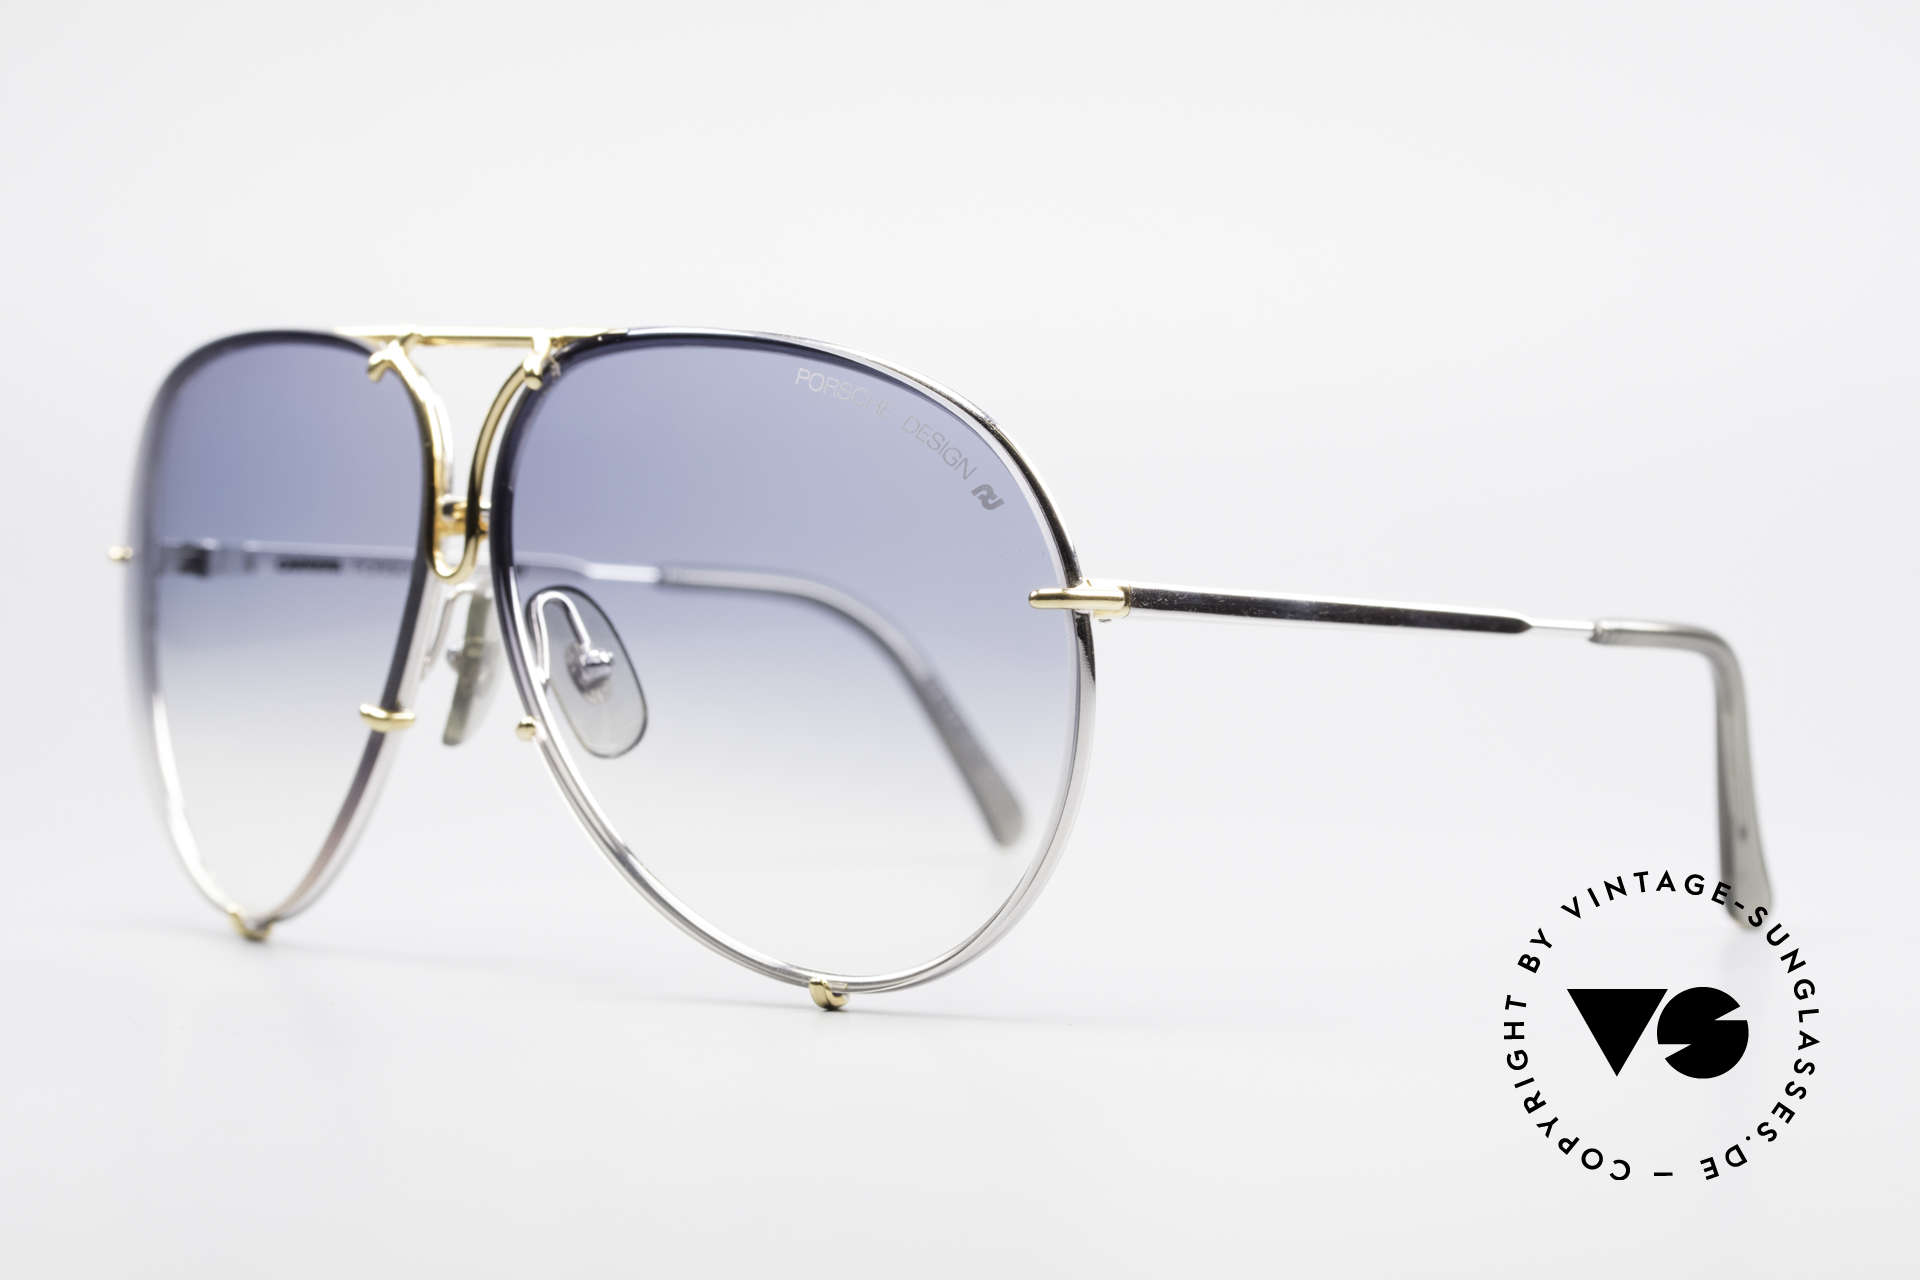 Porsche 5623 Johnny Depp Black Mass Shades, the legend with interchangeable lenses; true vintage, Made for Men and Women